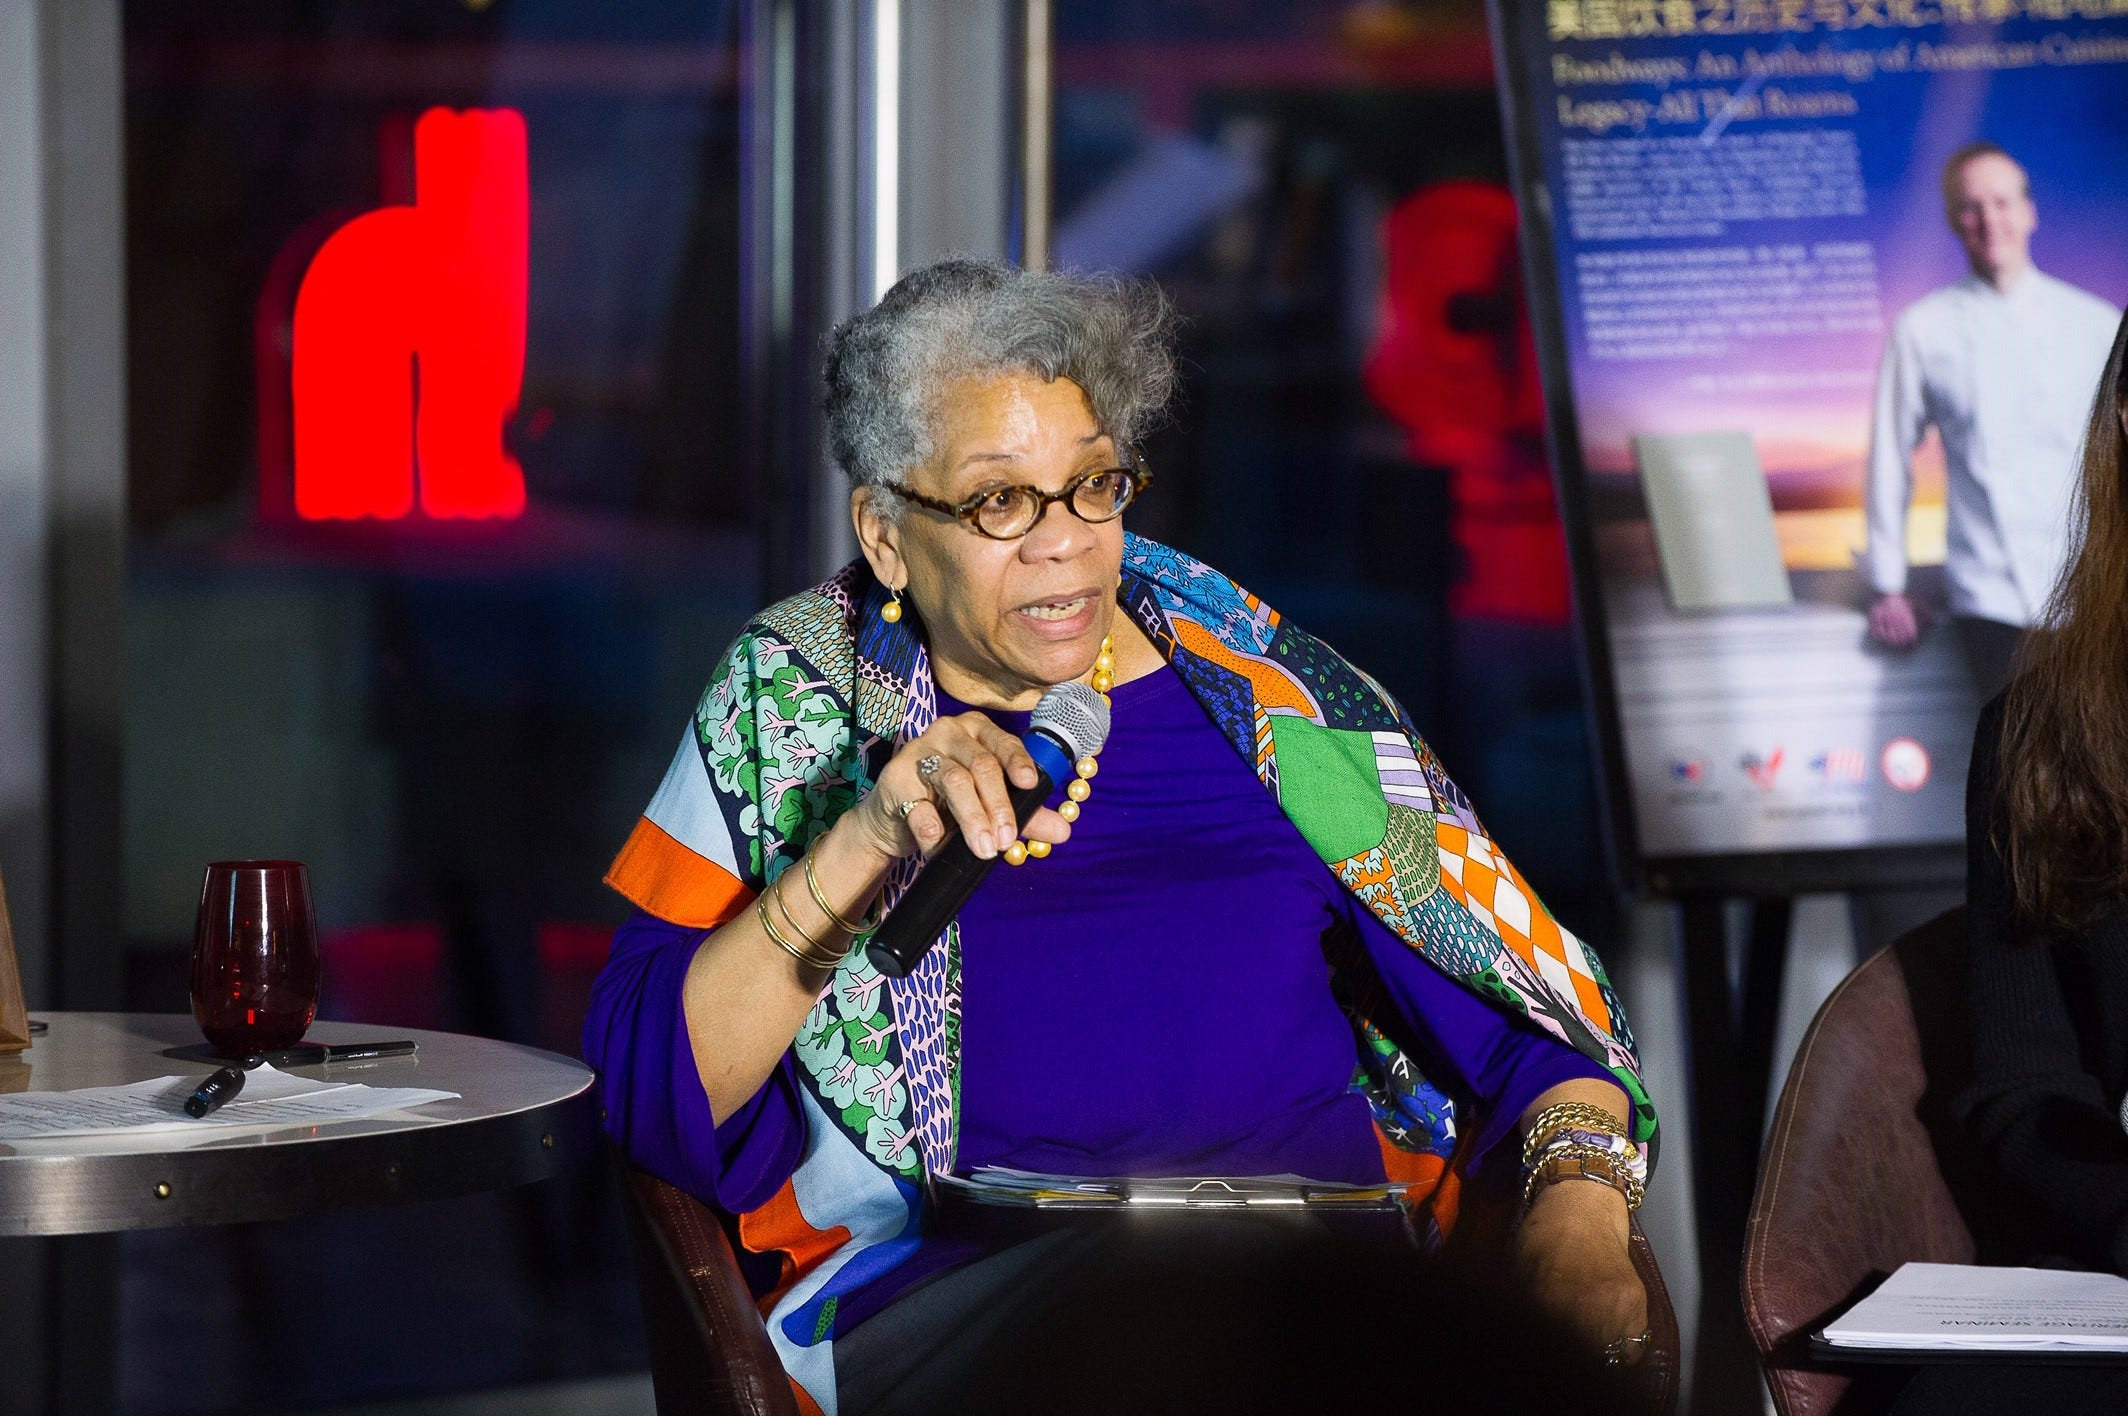 One of the most respected of all culinary historians is  Dr. Jessica Harris. She's a professor, journalist, author of more than a dozen books, and consultant for the National Museum of African American History and Culture in Washington D.C.